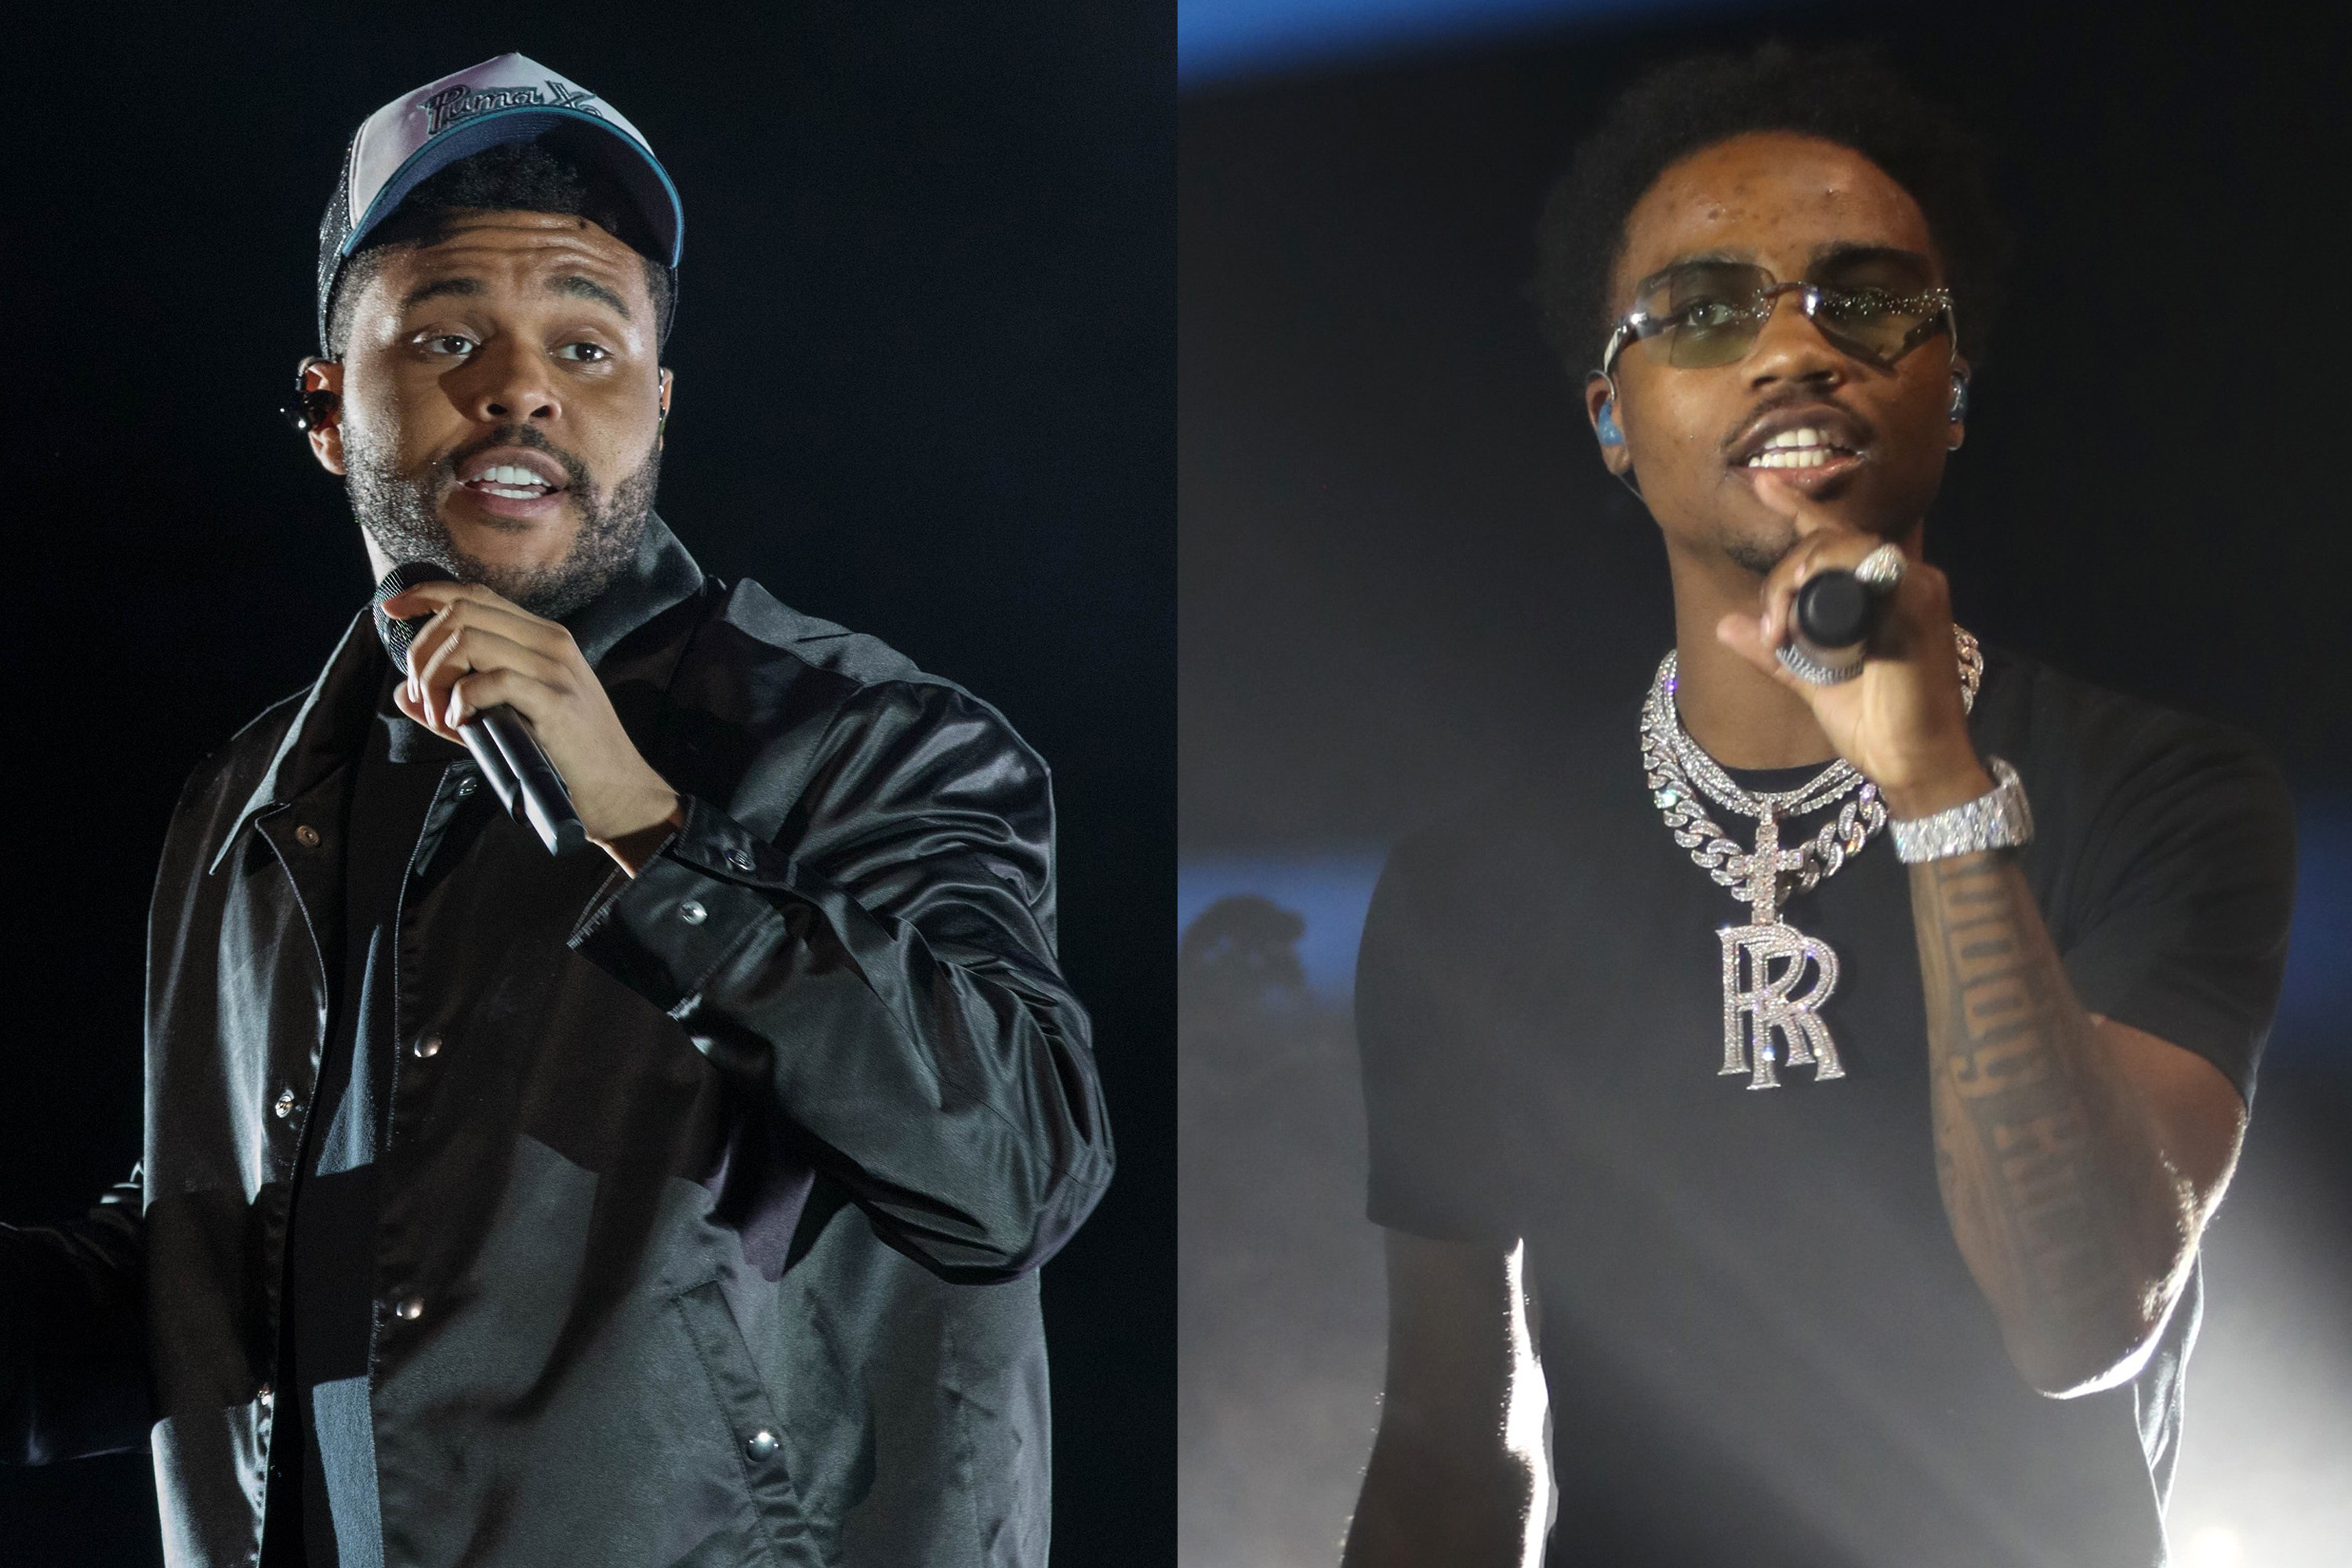 American Music Awards 2020 anuncia indicados; The Weeknd e Roddy Ricch lideram lista